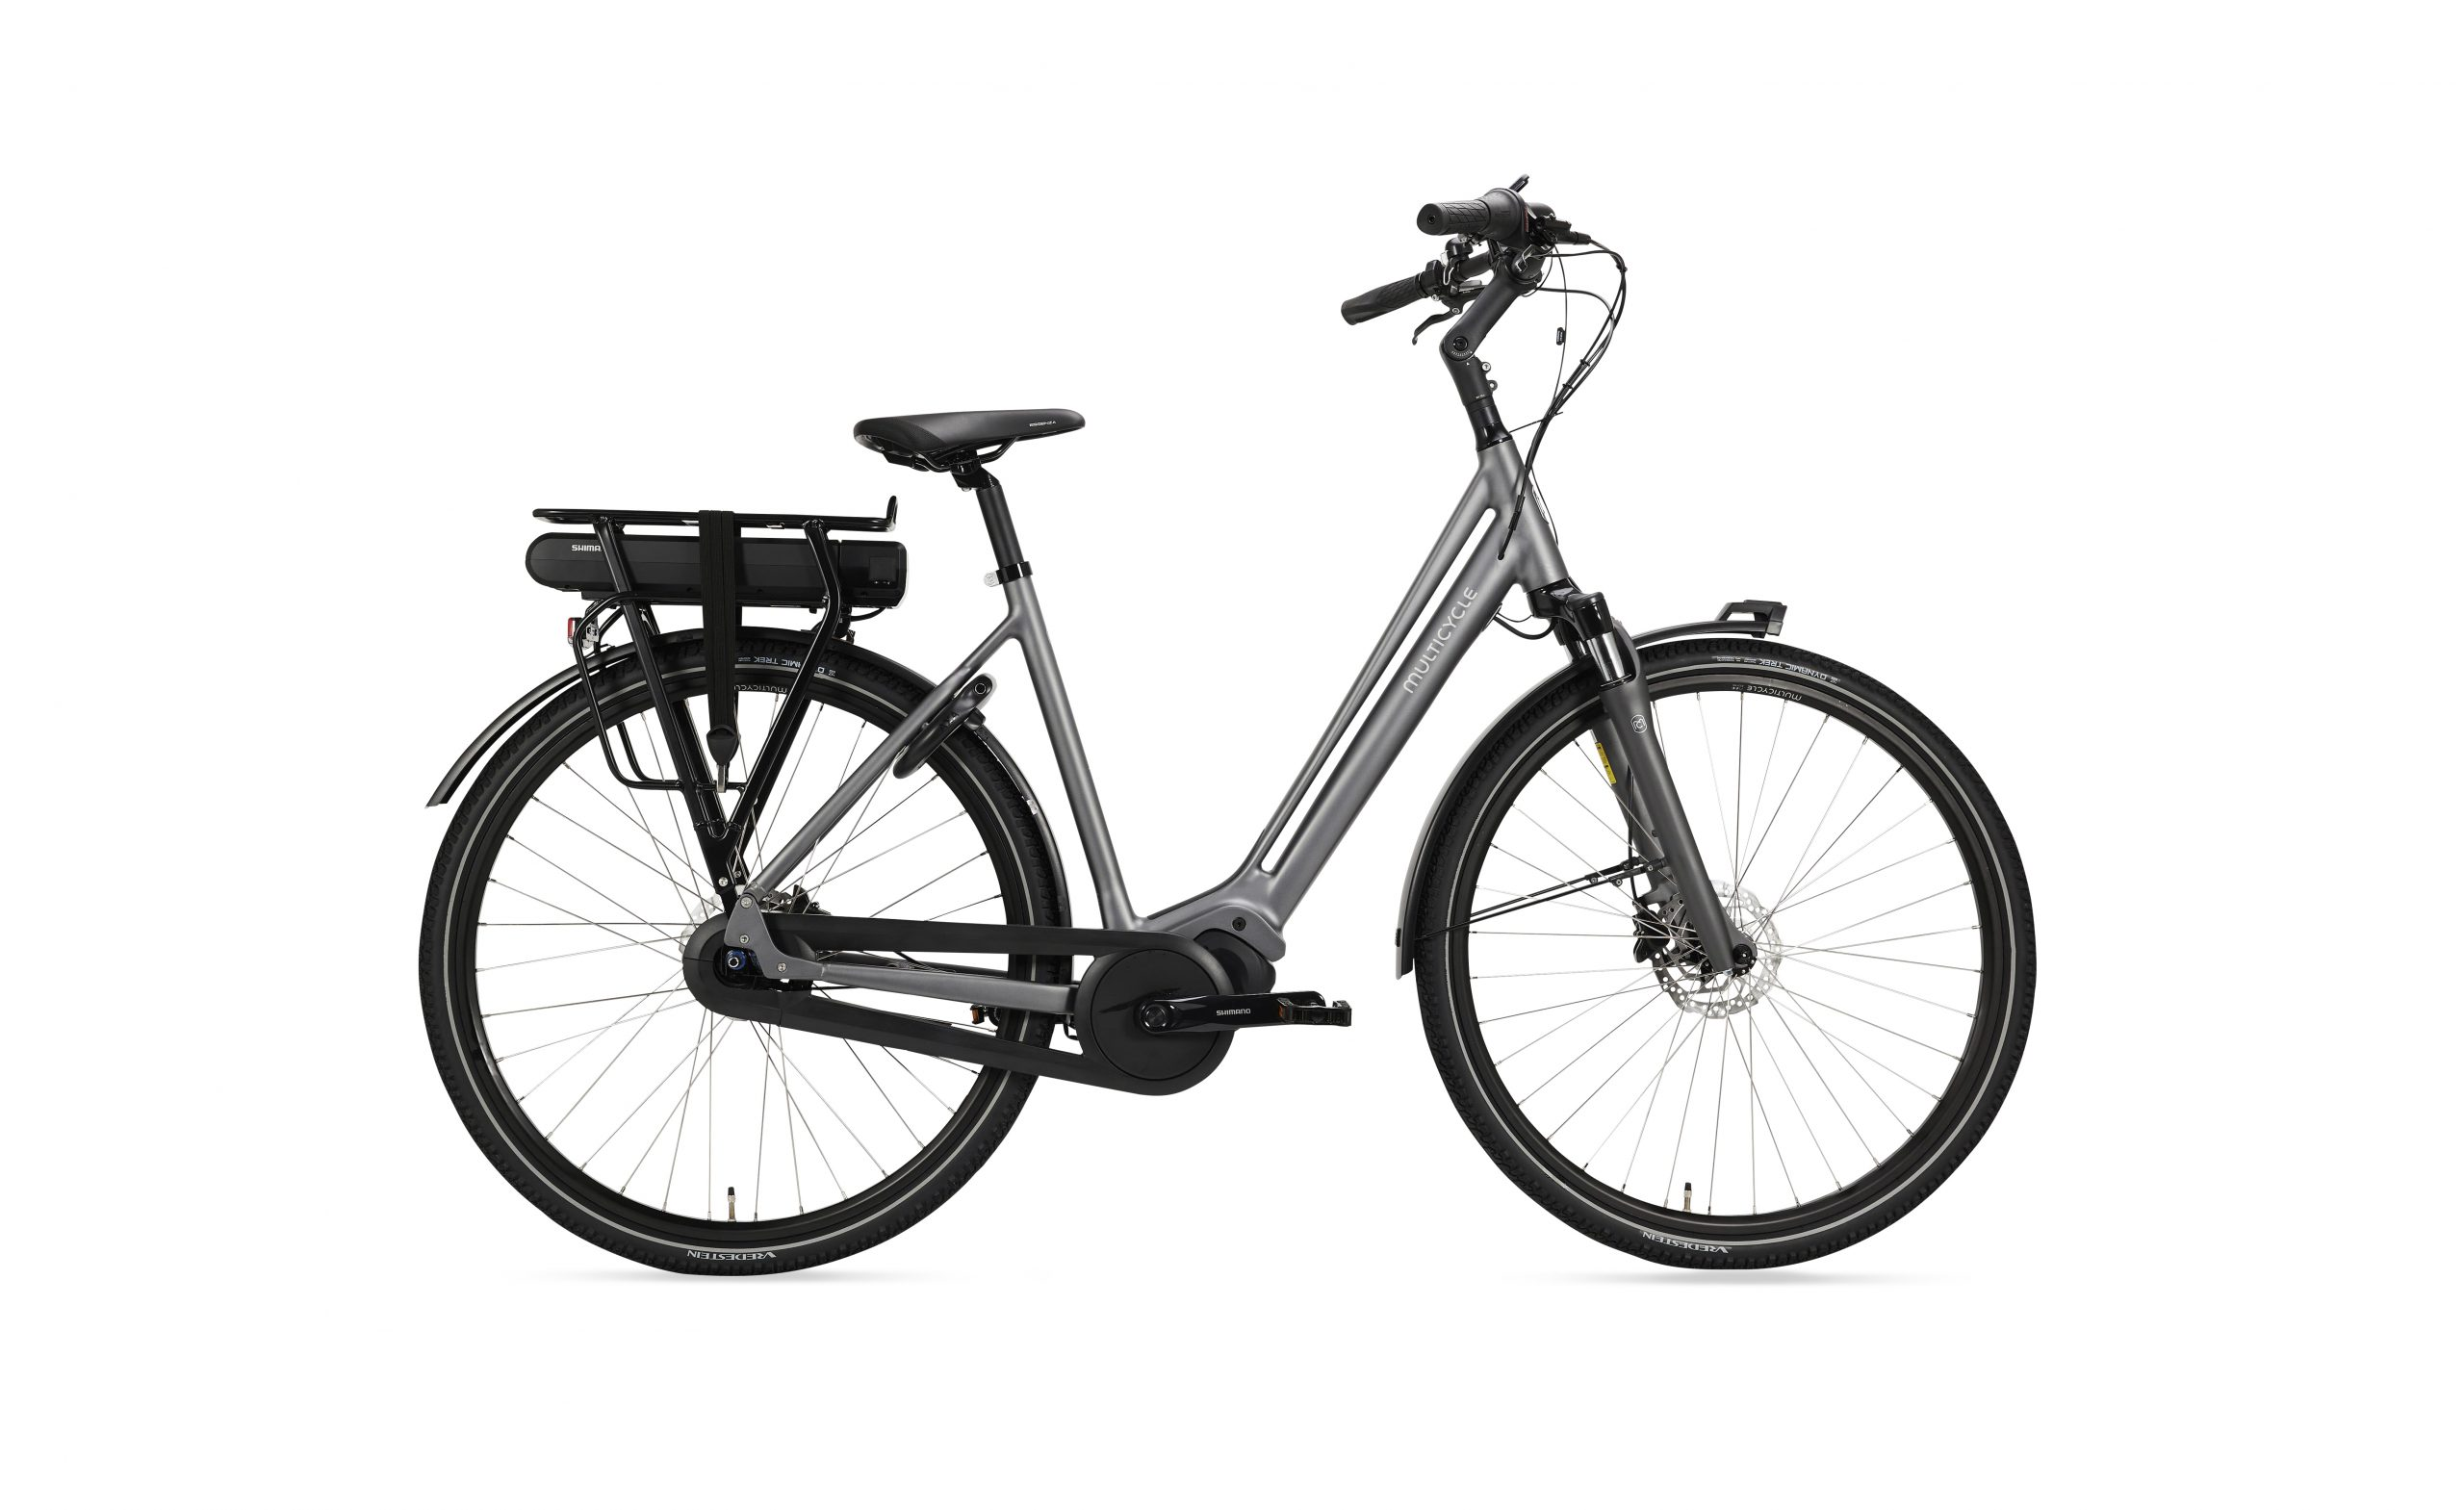 Leasefiets_Multicycle_Solo_EMI_Lage_Instap